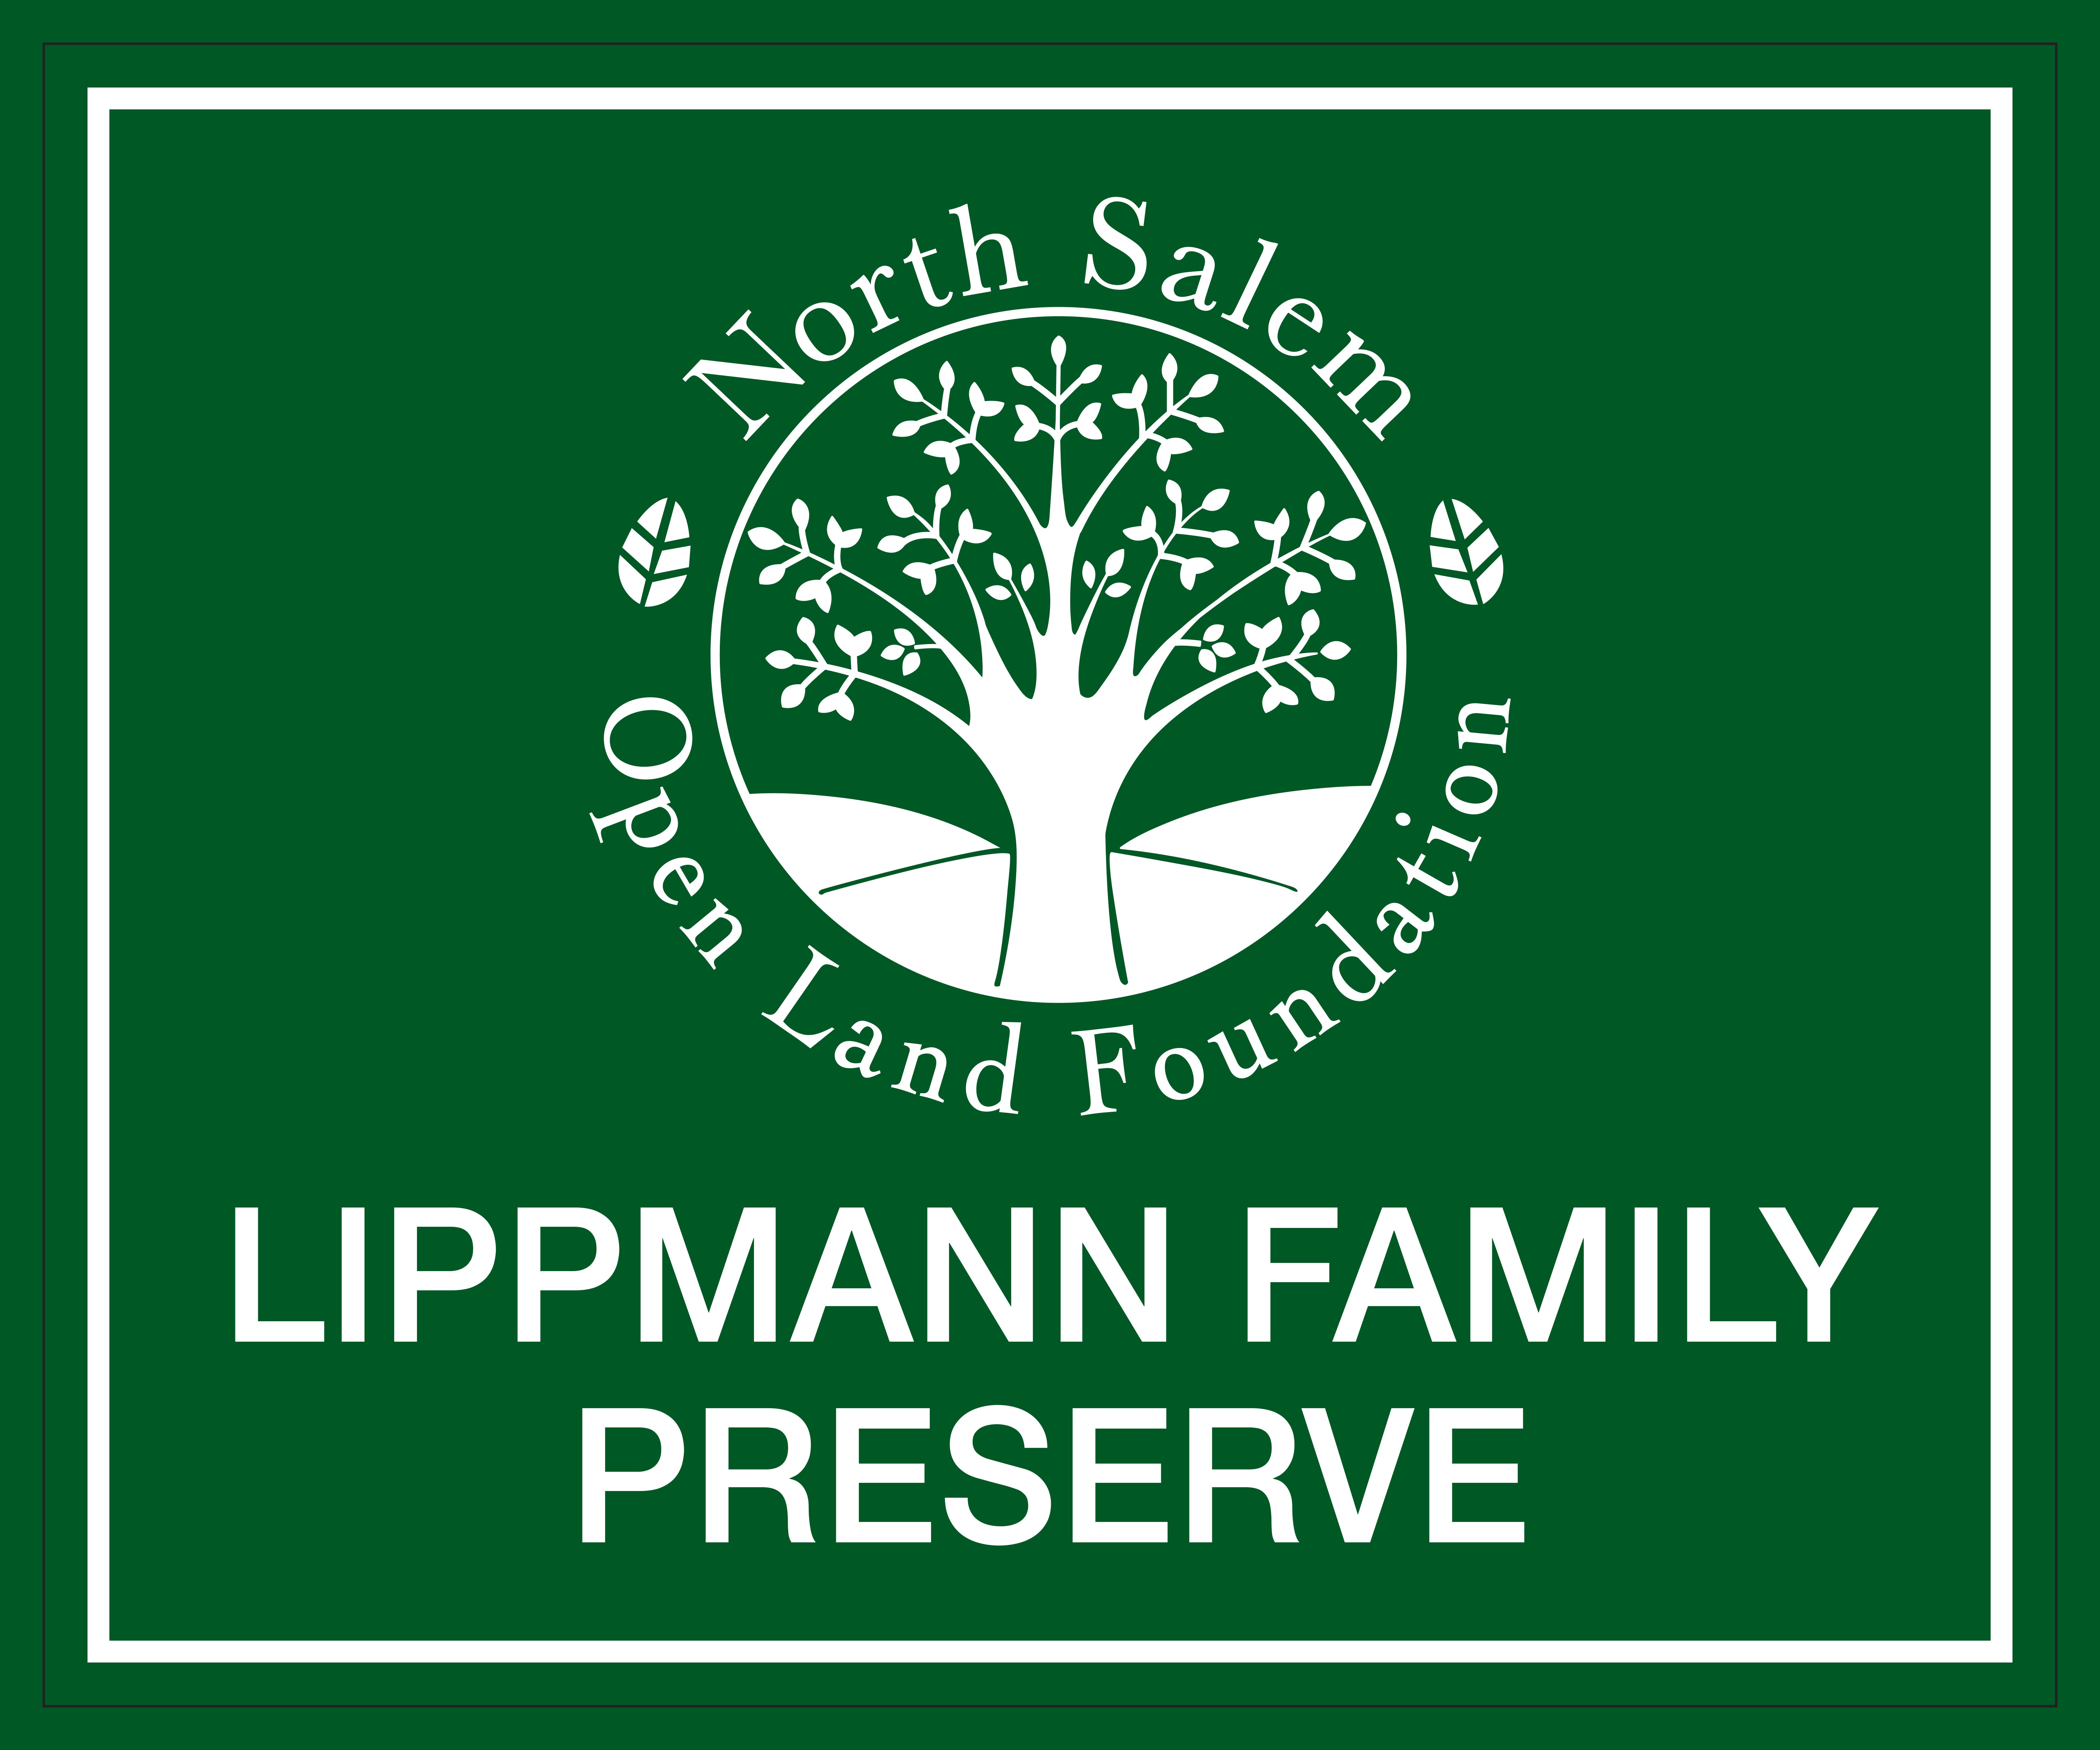 NSOLF Lippmann Family Preserve 24x20 REV